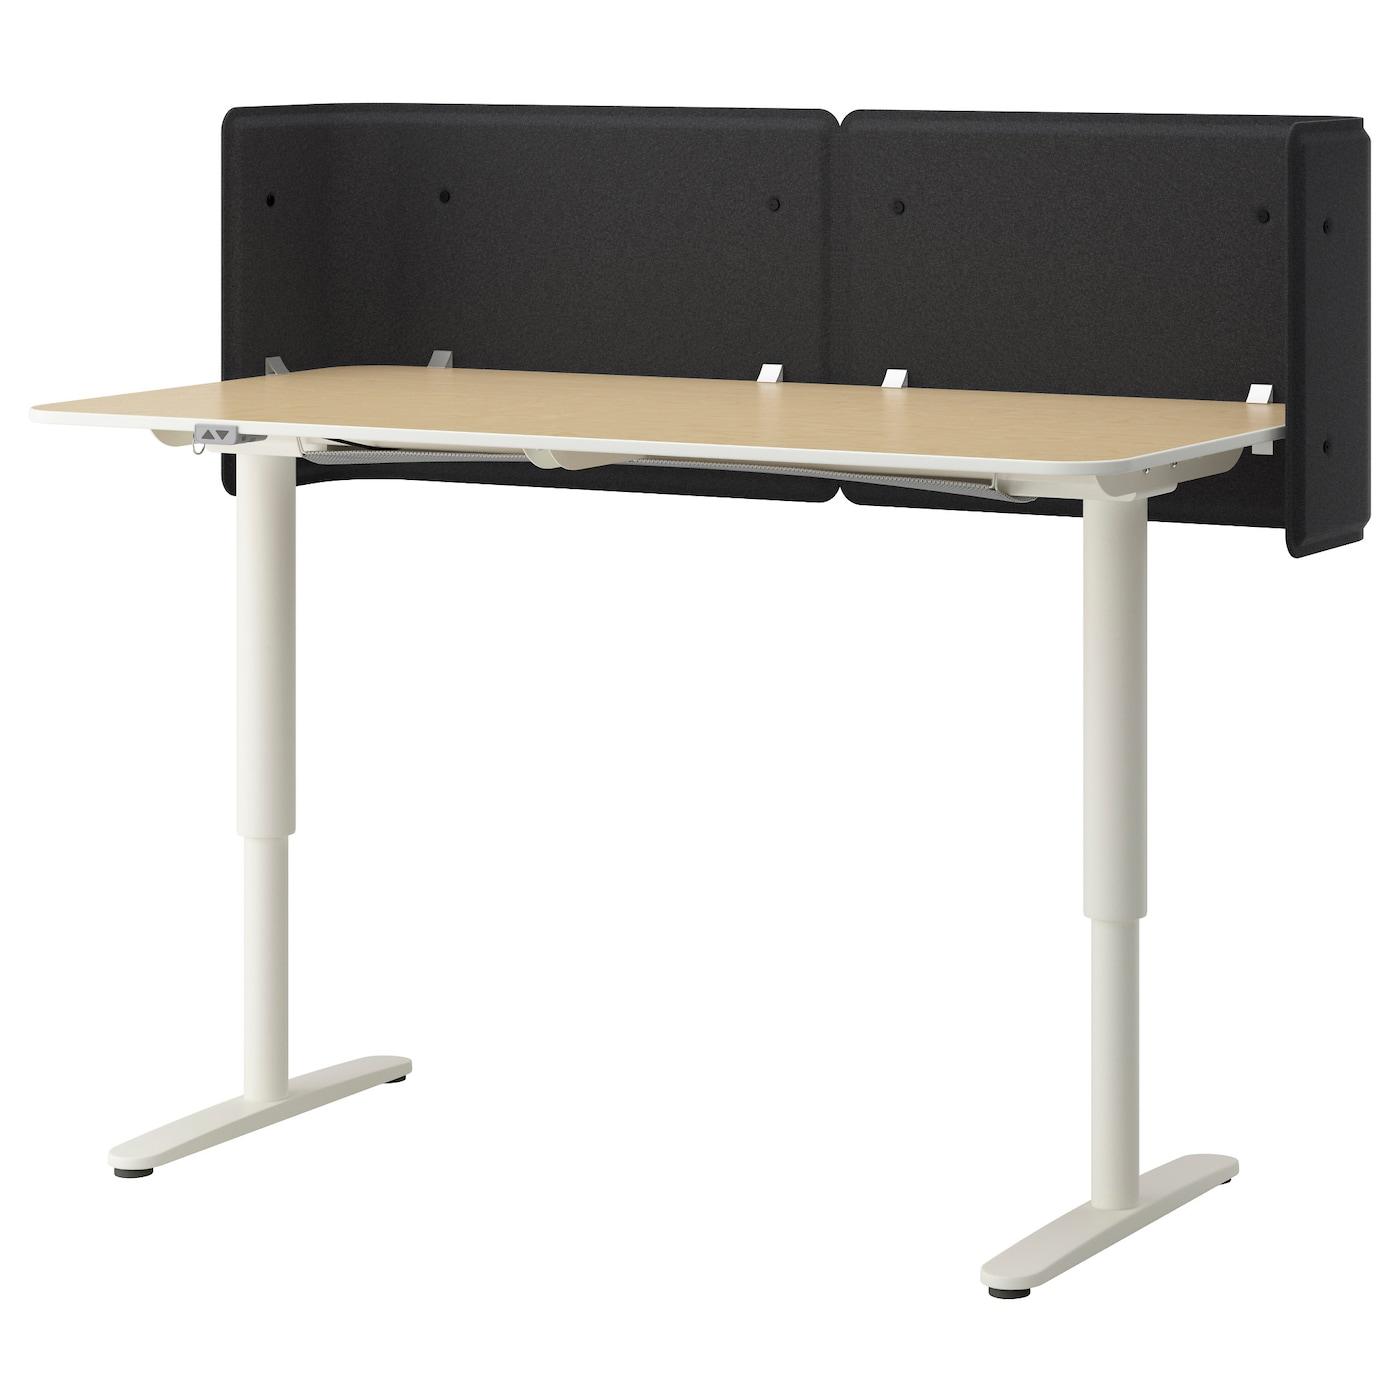 illustrious full variable adjustable standing dreadful stand height desk sit computer size and up executive home raising depot workstation office best of s fabulous superb riser motorized